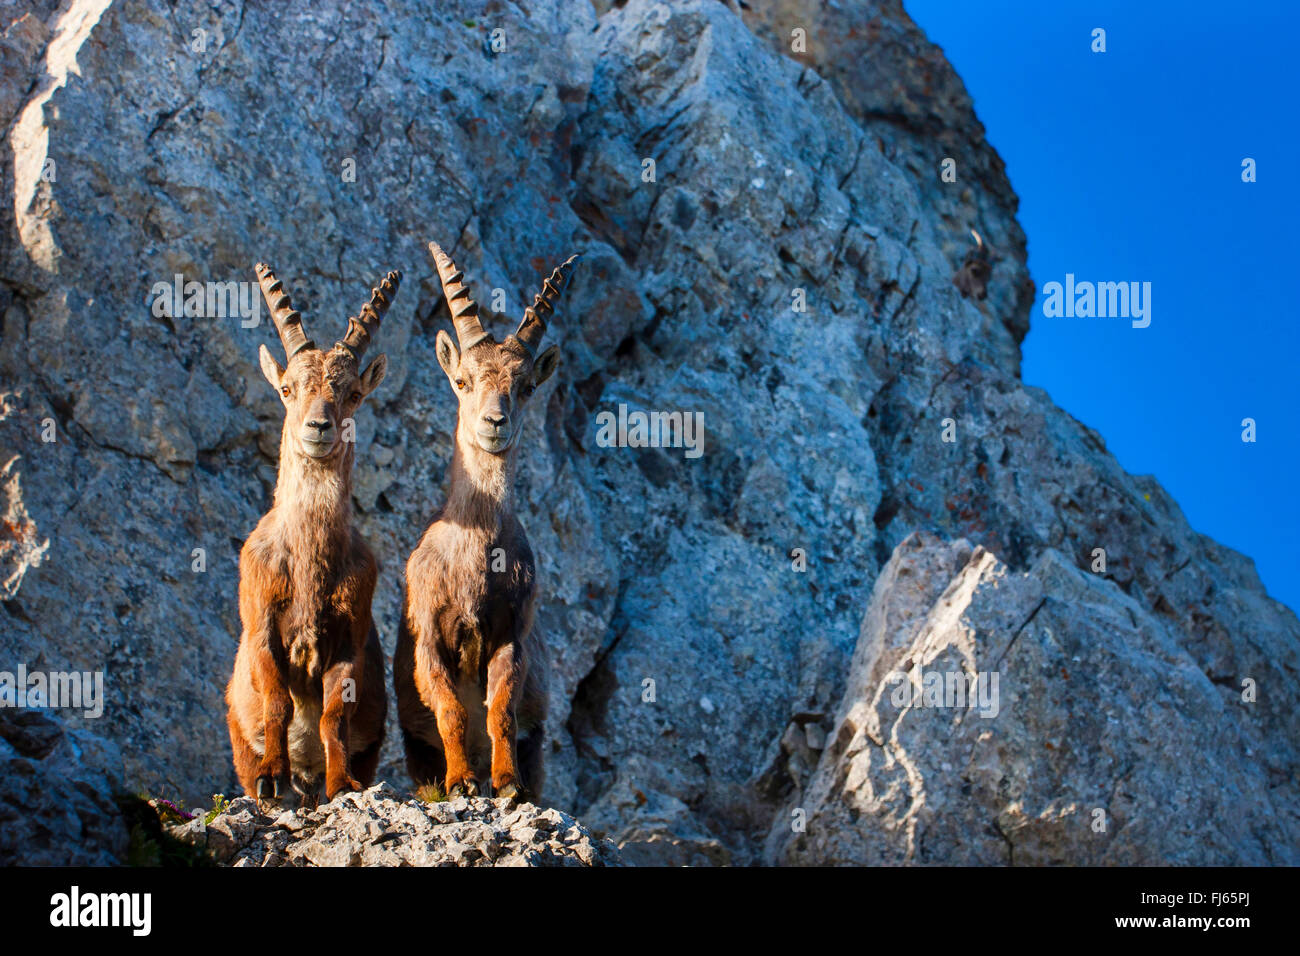 Alpine ibex (Capra ibex, Capra ibex ibex), two Alpine ibexes standing in morning light side by side on a cliff edge - Stock Image